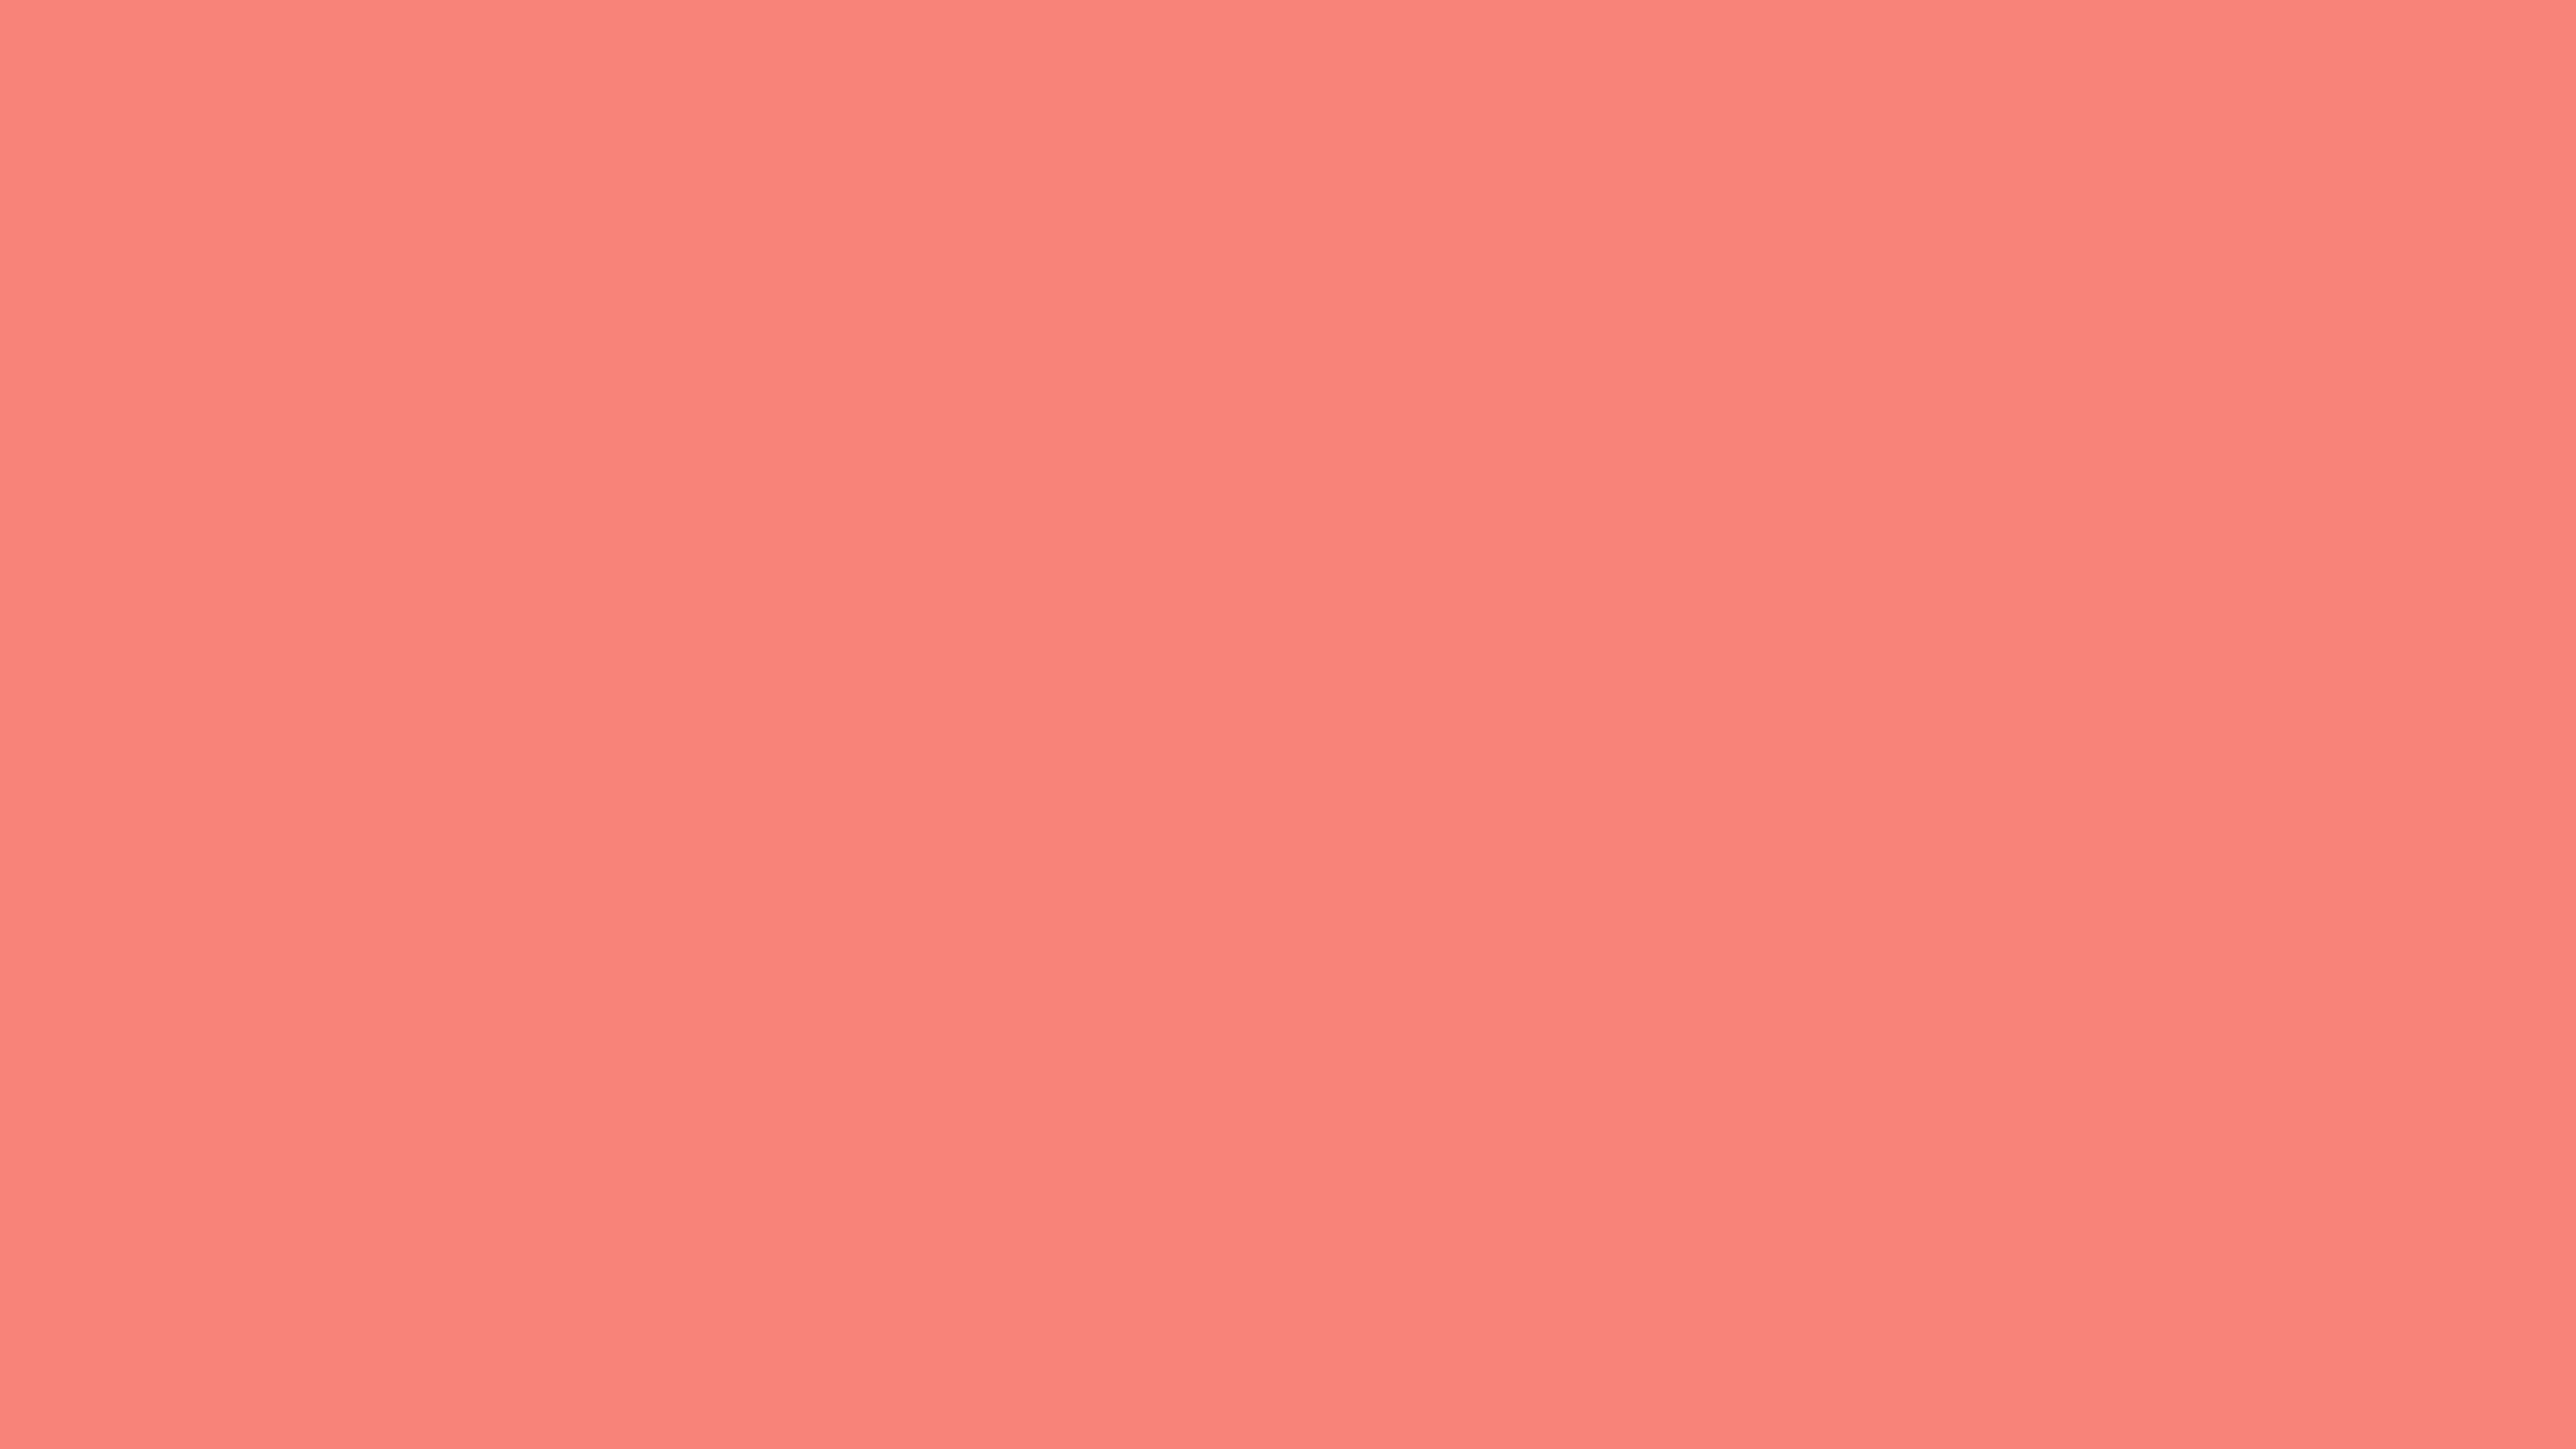 3840x2160 Congo Pink Solid Color Background